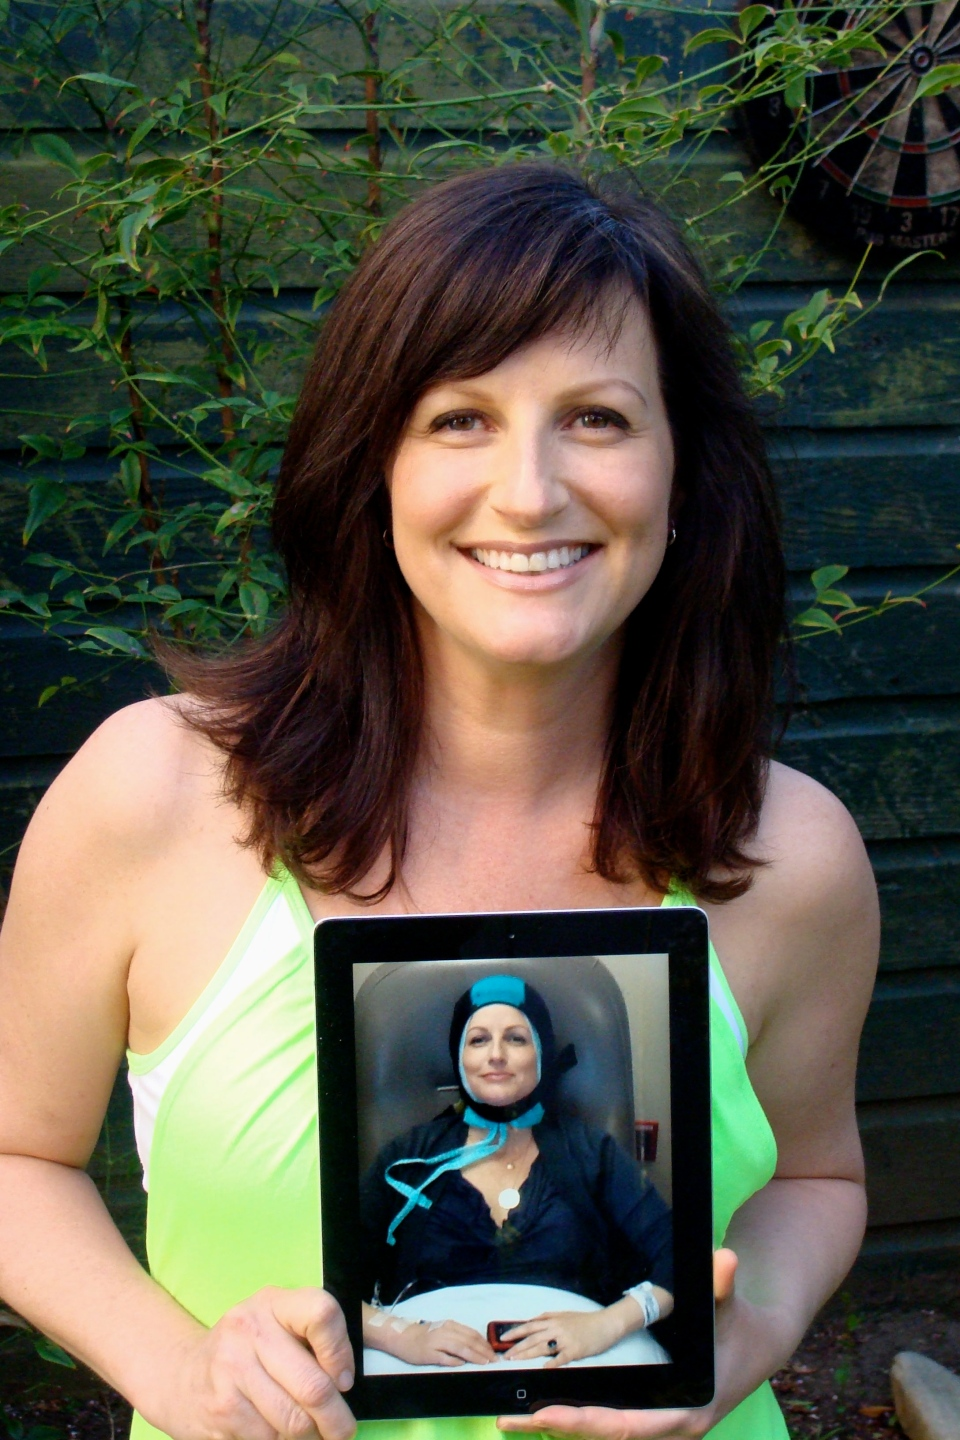 Breast cancer survivor Miriam Lipton, of San Francisco, holds a picture of herself, while undergoing chemotherapy two years ago wearing the DigniCap, an experimental scalp-cooling system that she credits with preserving most of her hair, June 20, 2013. (AP)